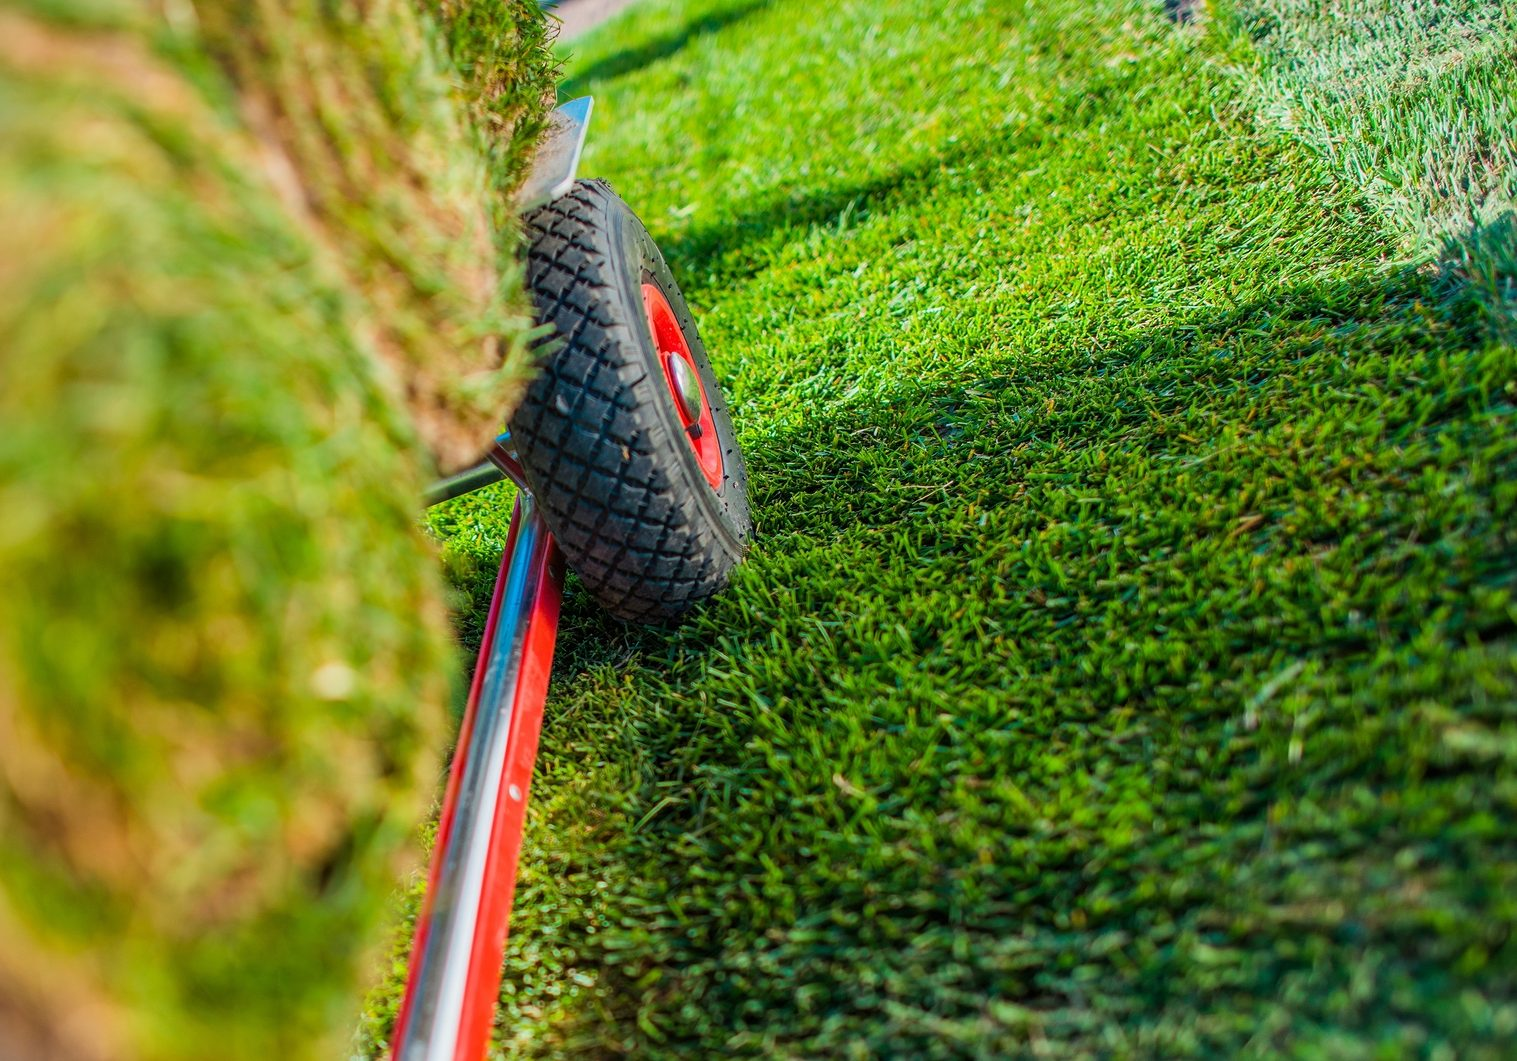 Creating New Grass Field in the Garden. Natural Turf Grass on the Moving Cart Closeup Photo. Landscaping Industry.